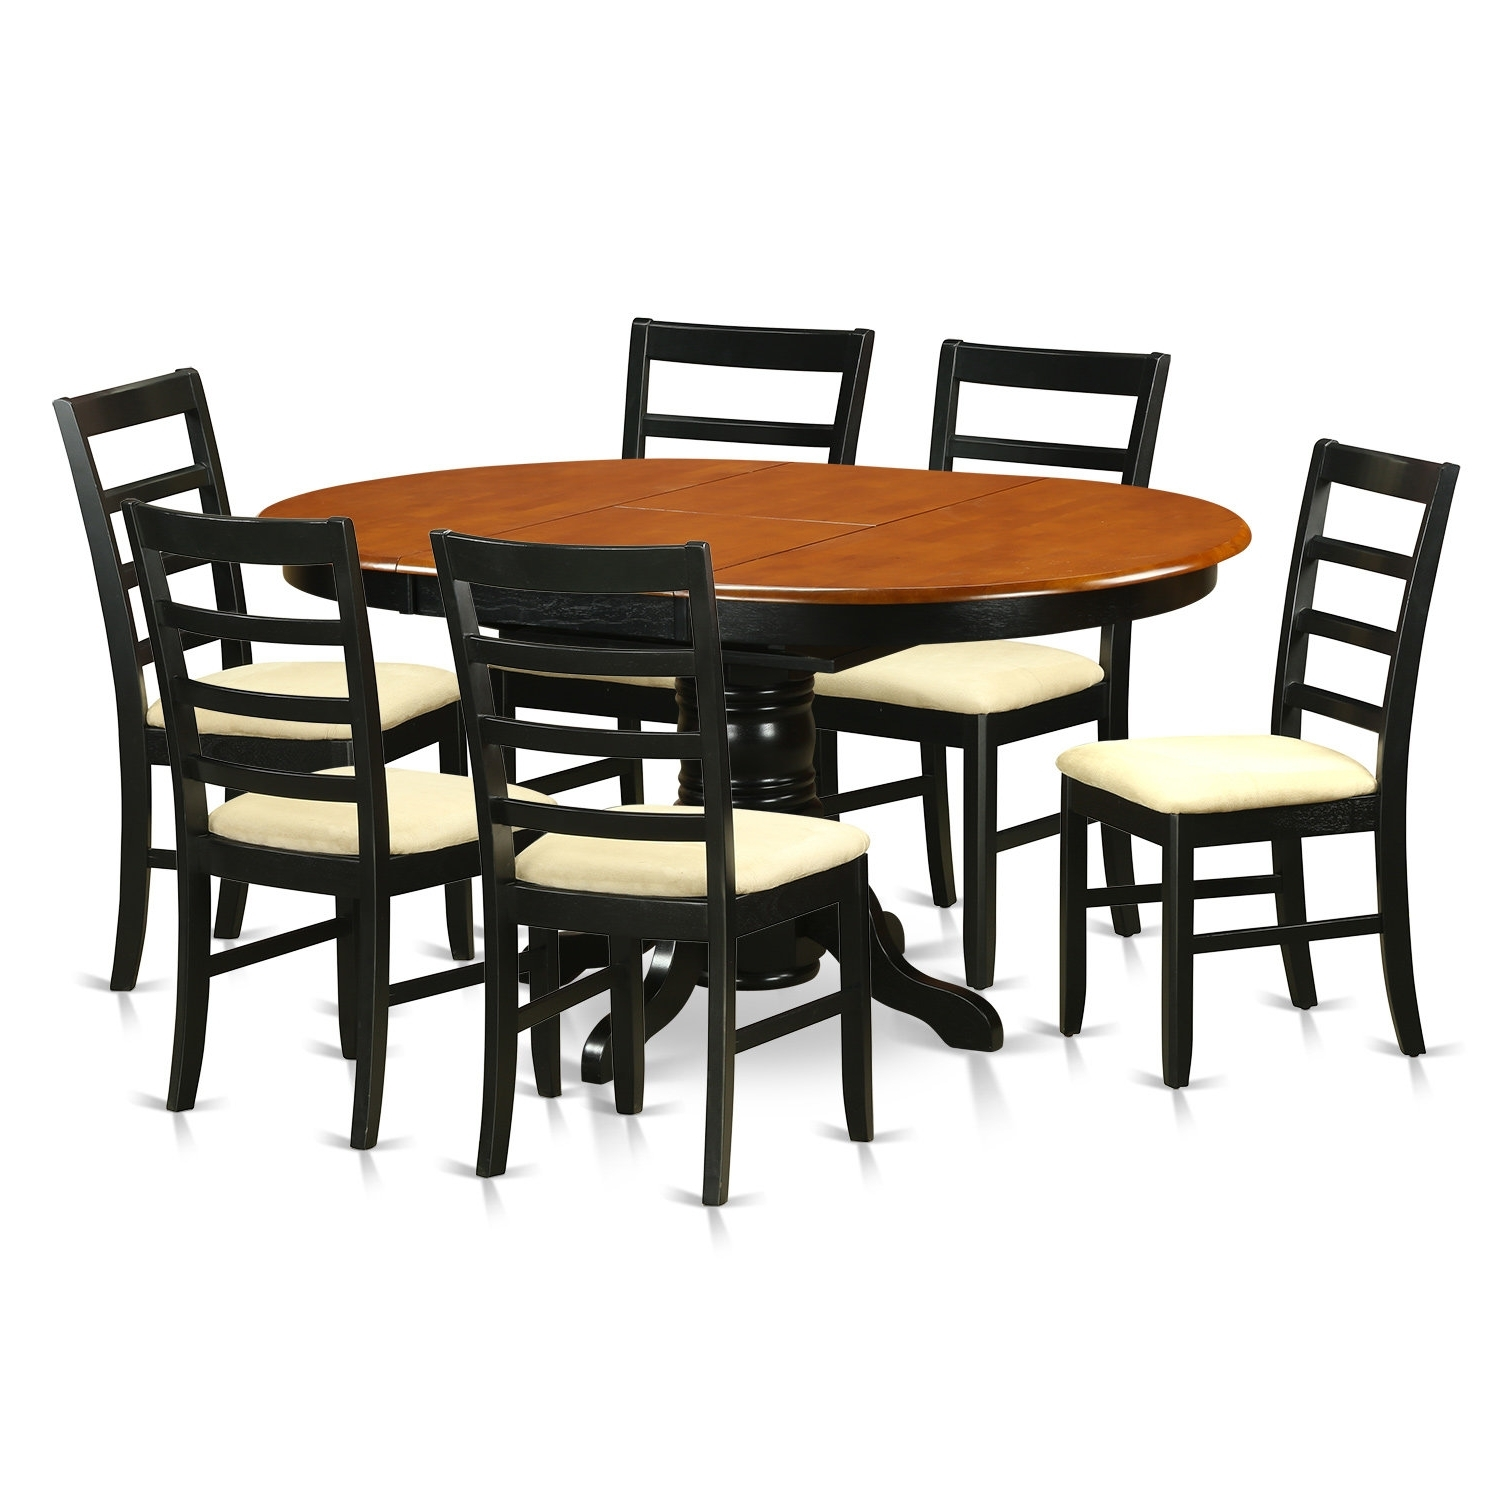 Darby Home Co Attamore 7 Piece Dining Set (View 8 of 25)